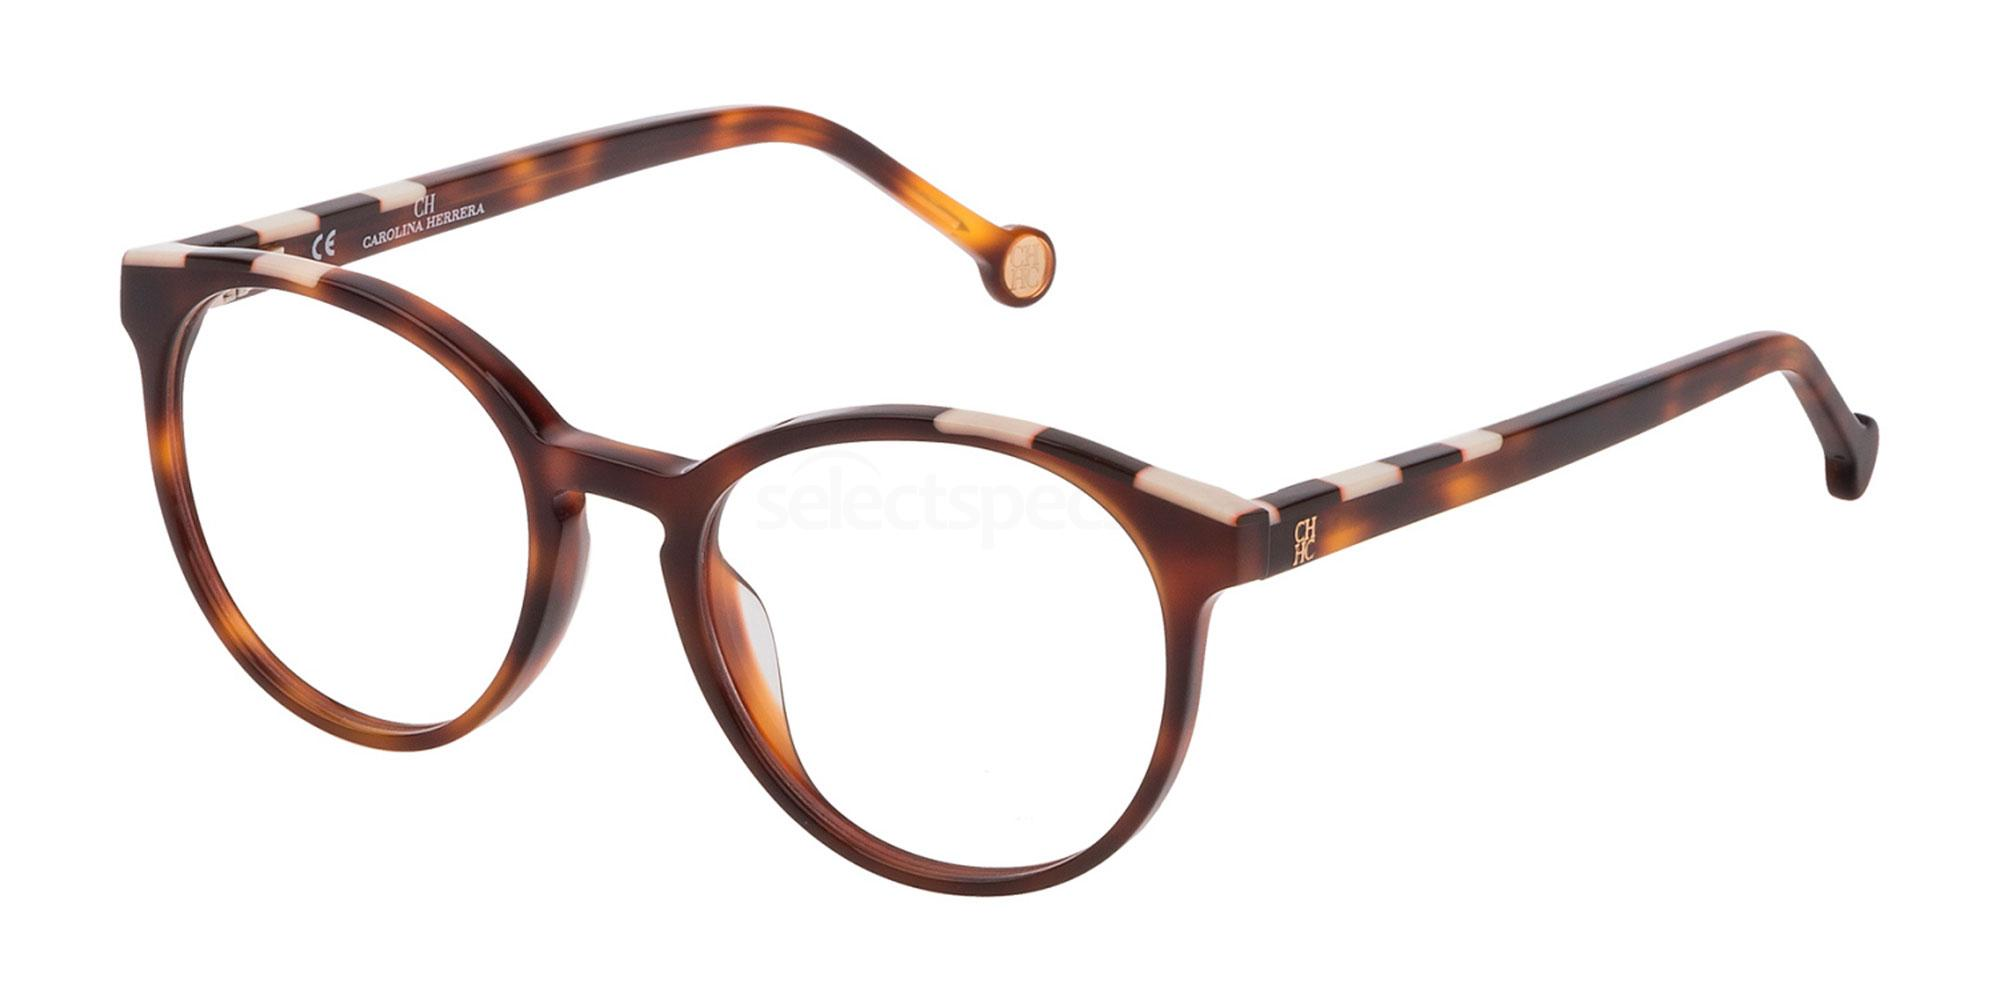 0752 VHE802 Glasses, CH Carolina Herrera